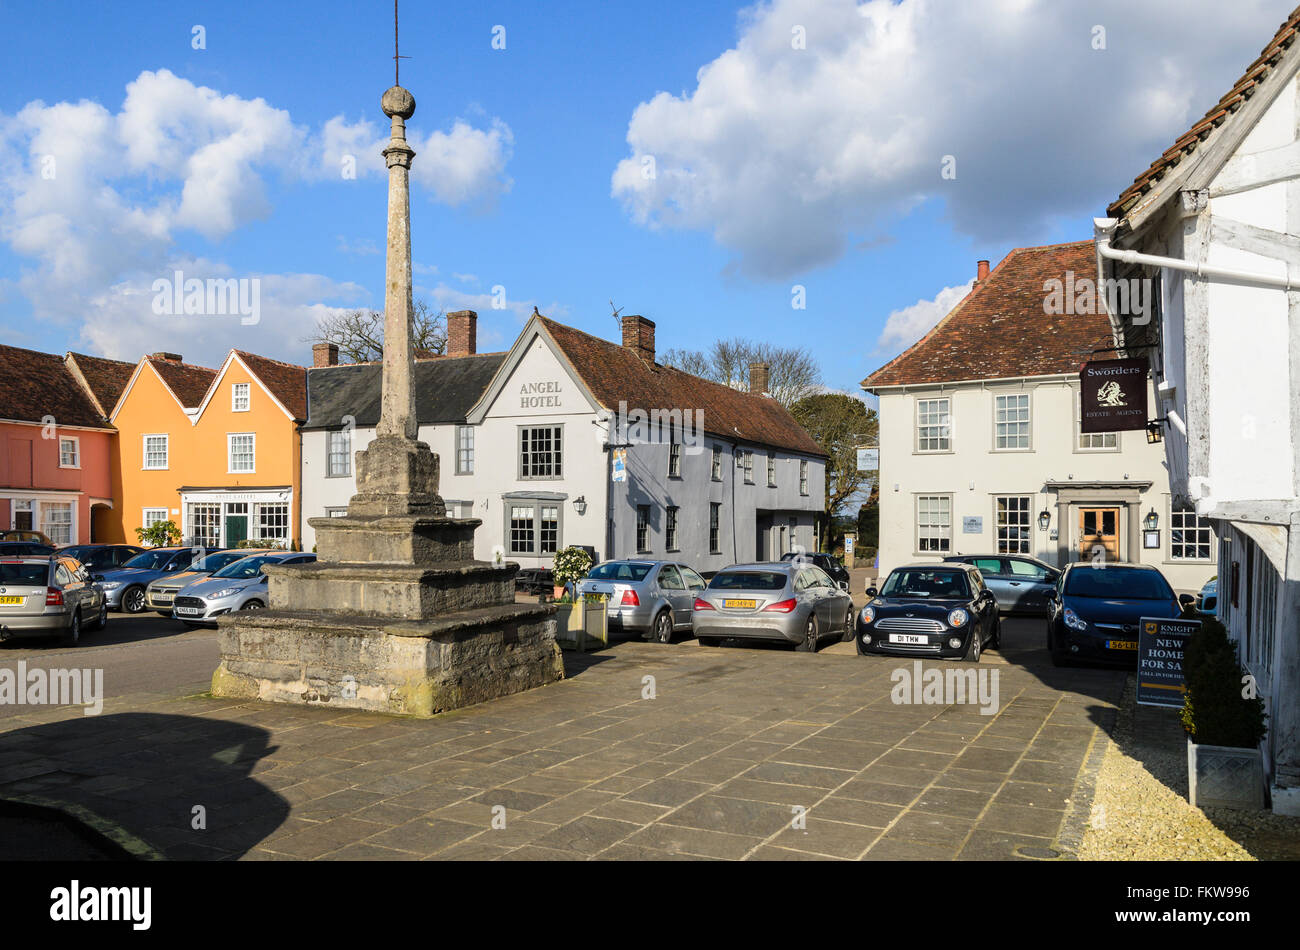 The historic Market Place, Lavenham, Suffolk, England, United Kingdom. Stock Photo